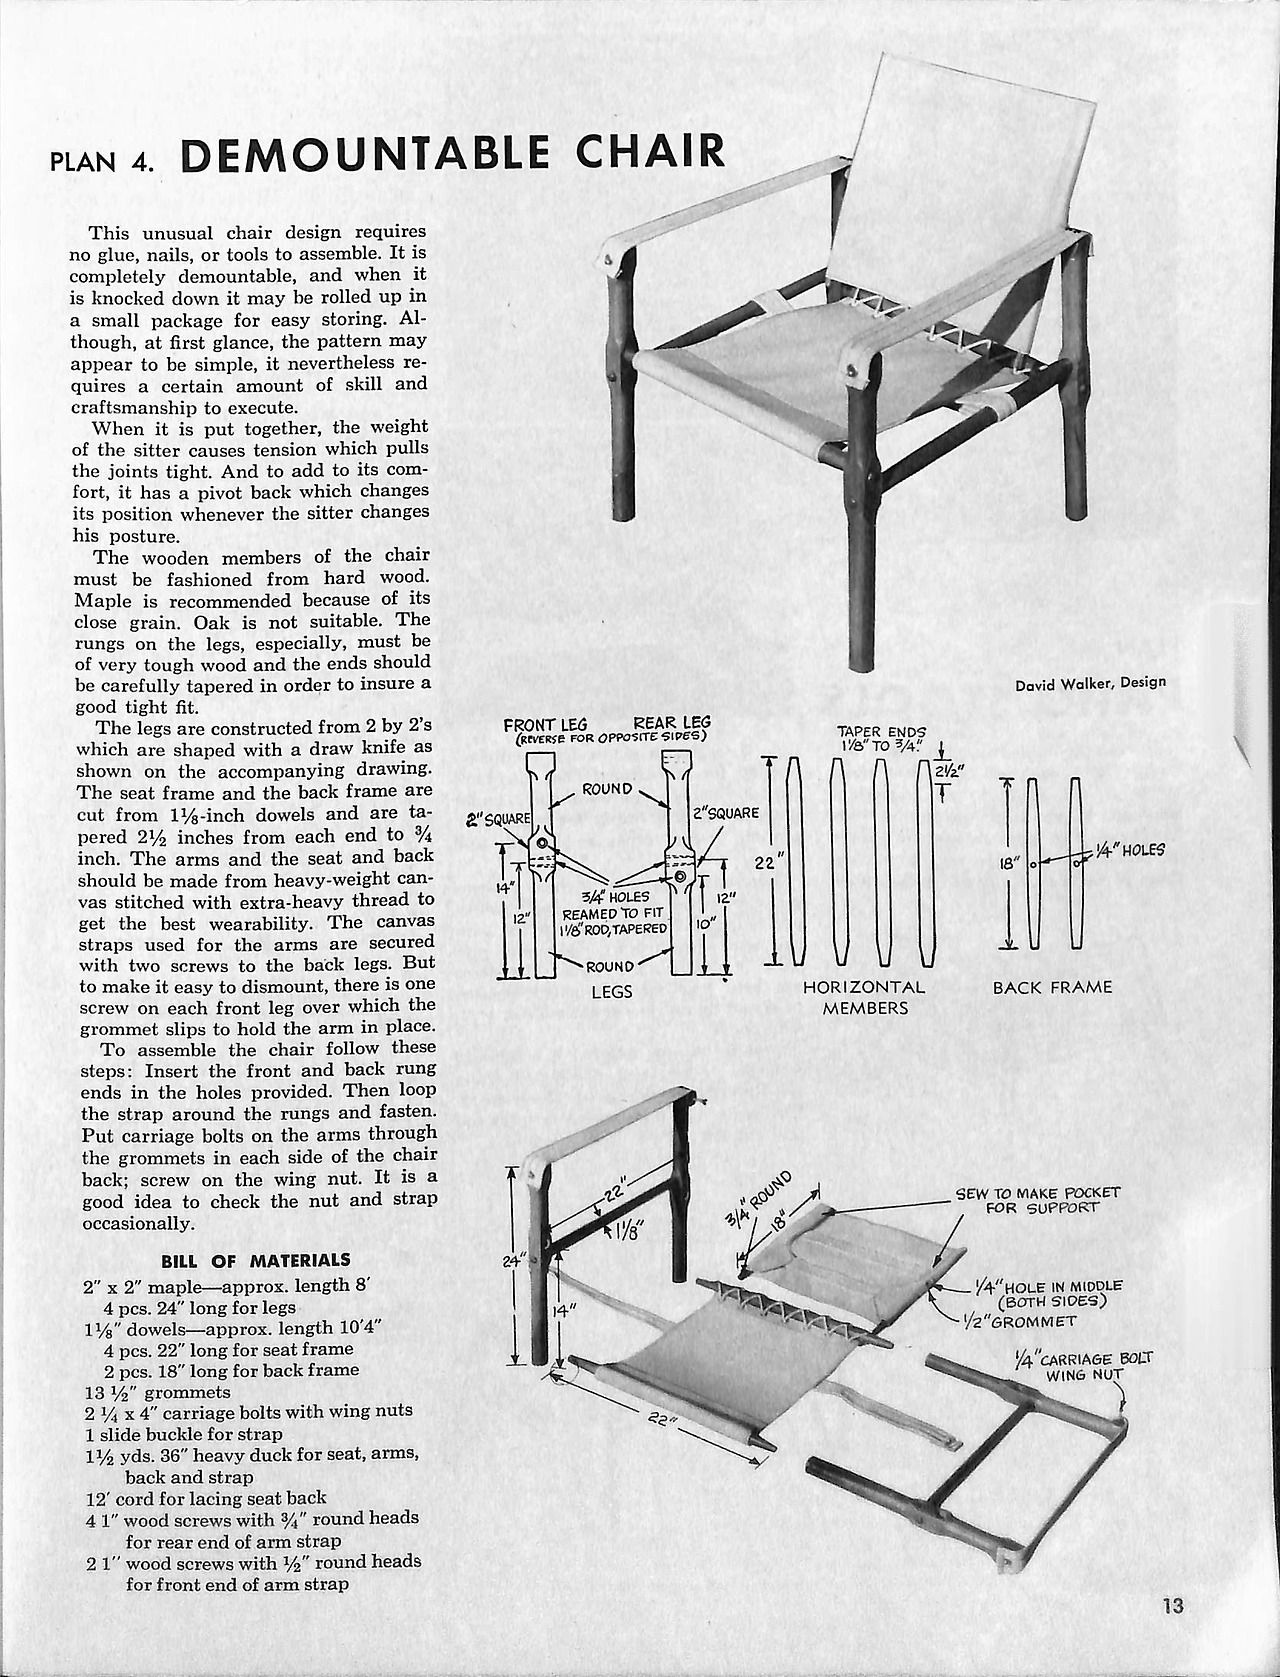 Demountable Chair Safari Chair British Army Officer Chair From Sunset Books From Hippliplans Tu Campaign Furniture Plans Campaign Furniture Joinery Design